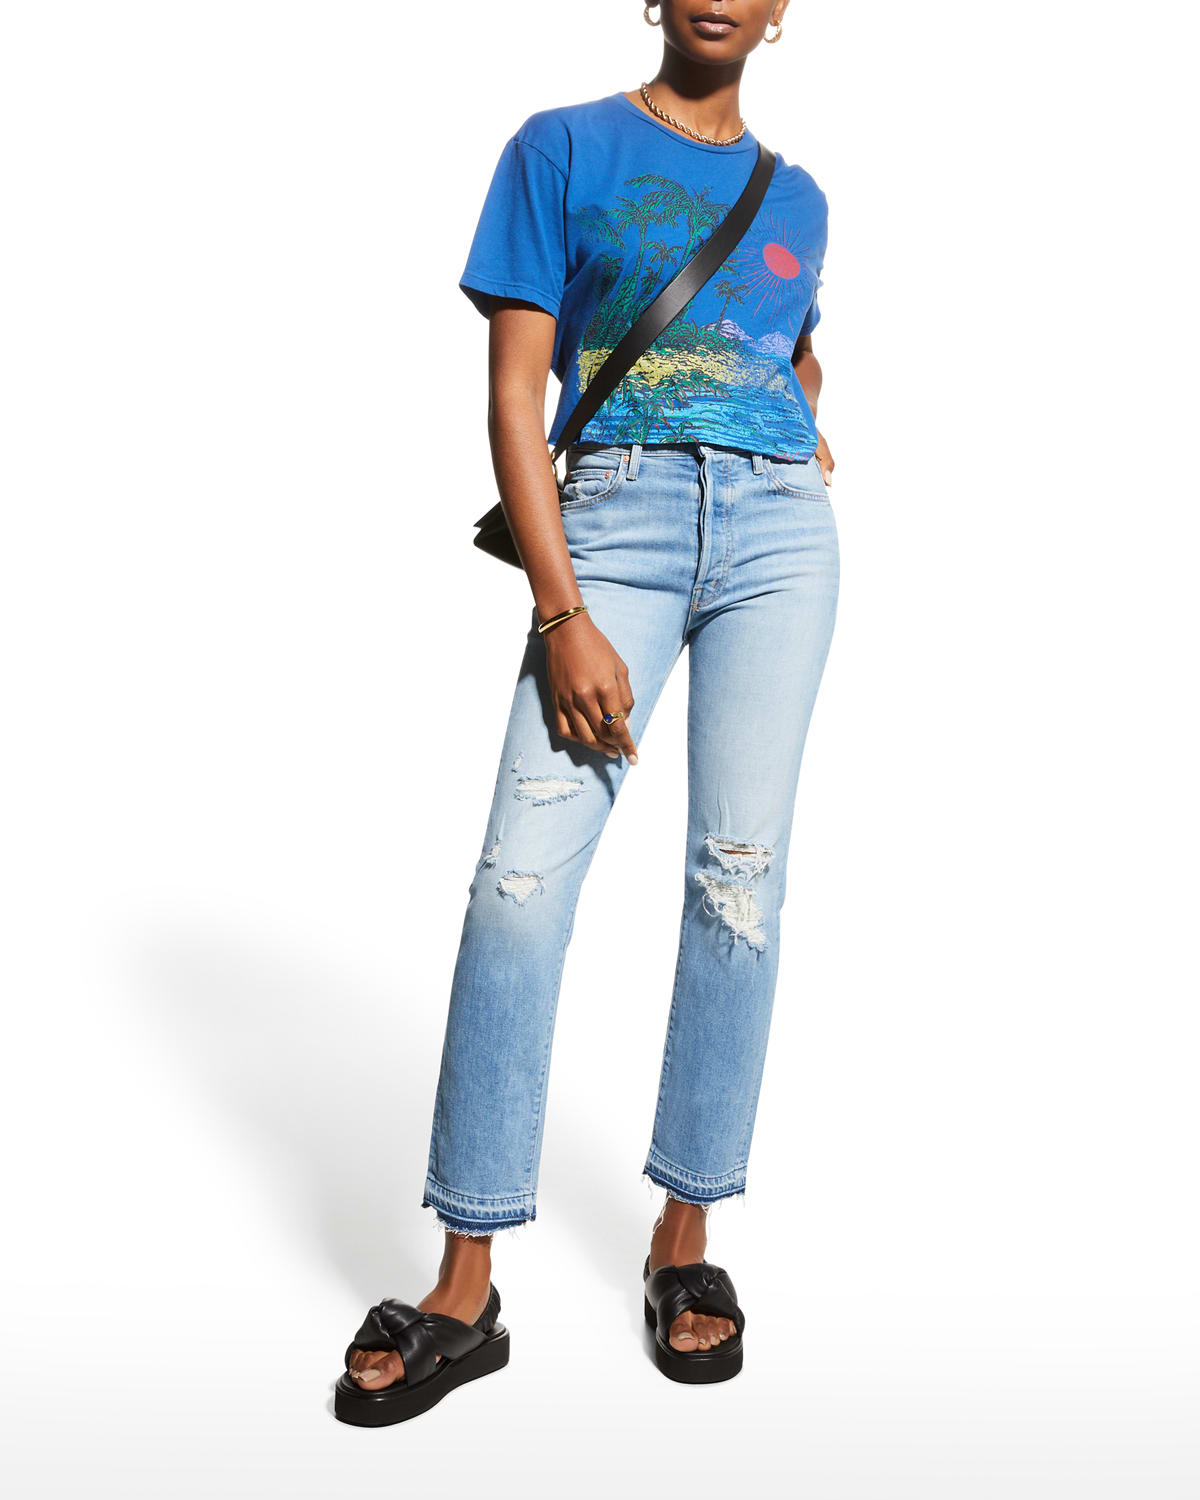 The High-Waisted Hiker Hover Jeans with Undone Hem